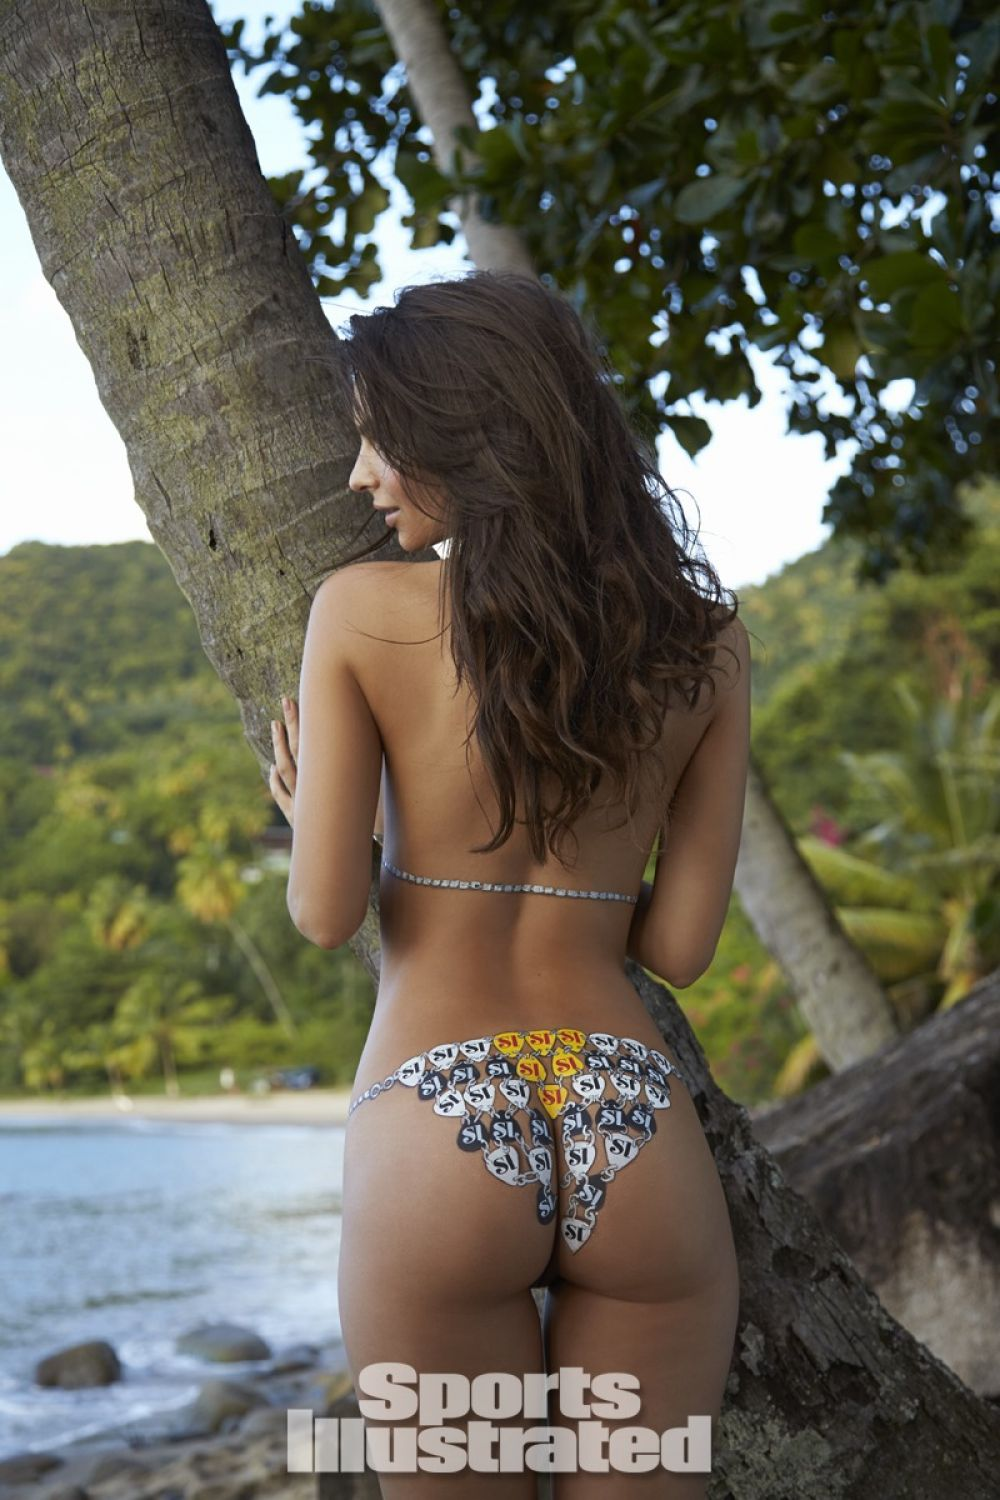 emily-ratajkowski-in-sports-illustrated-2014-swimsuit-issue_14.jpg - 189.39 KB